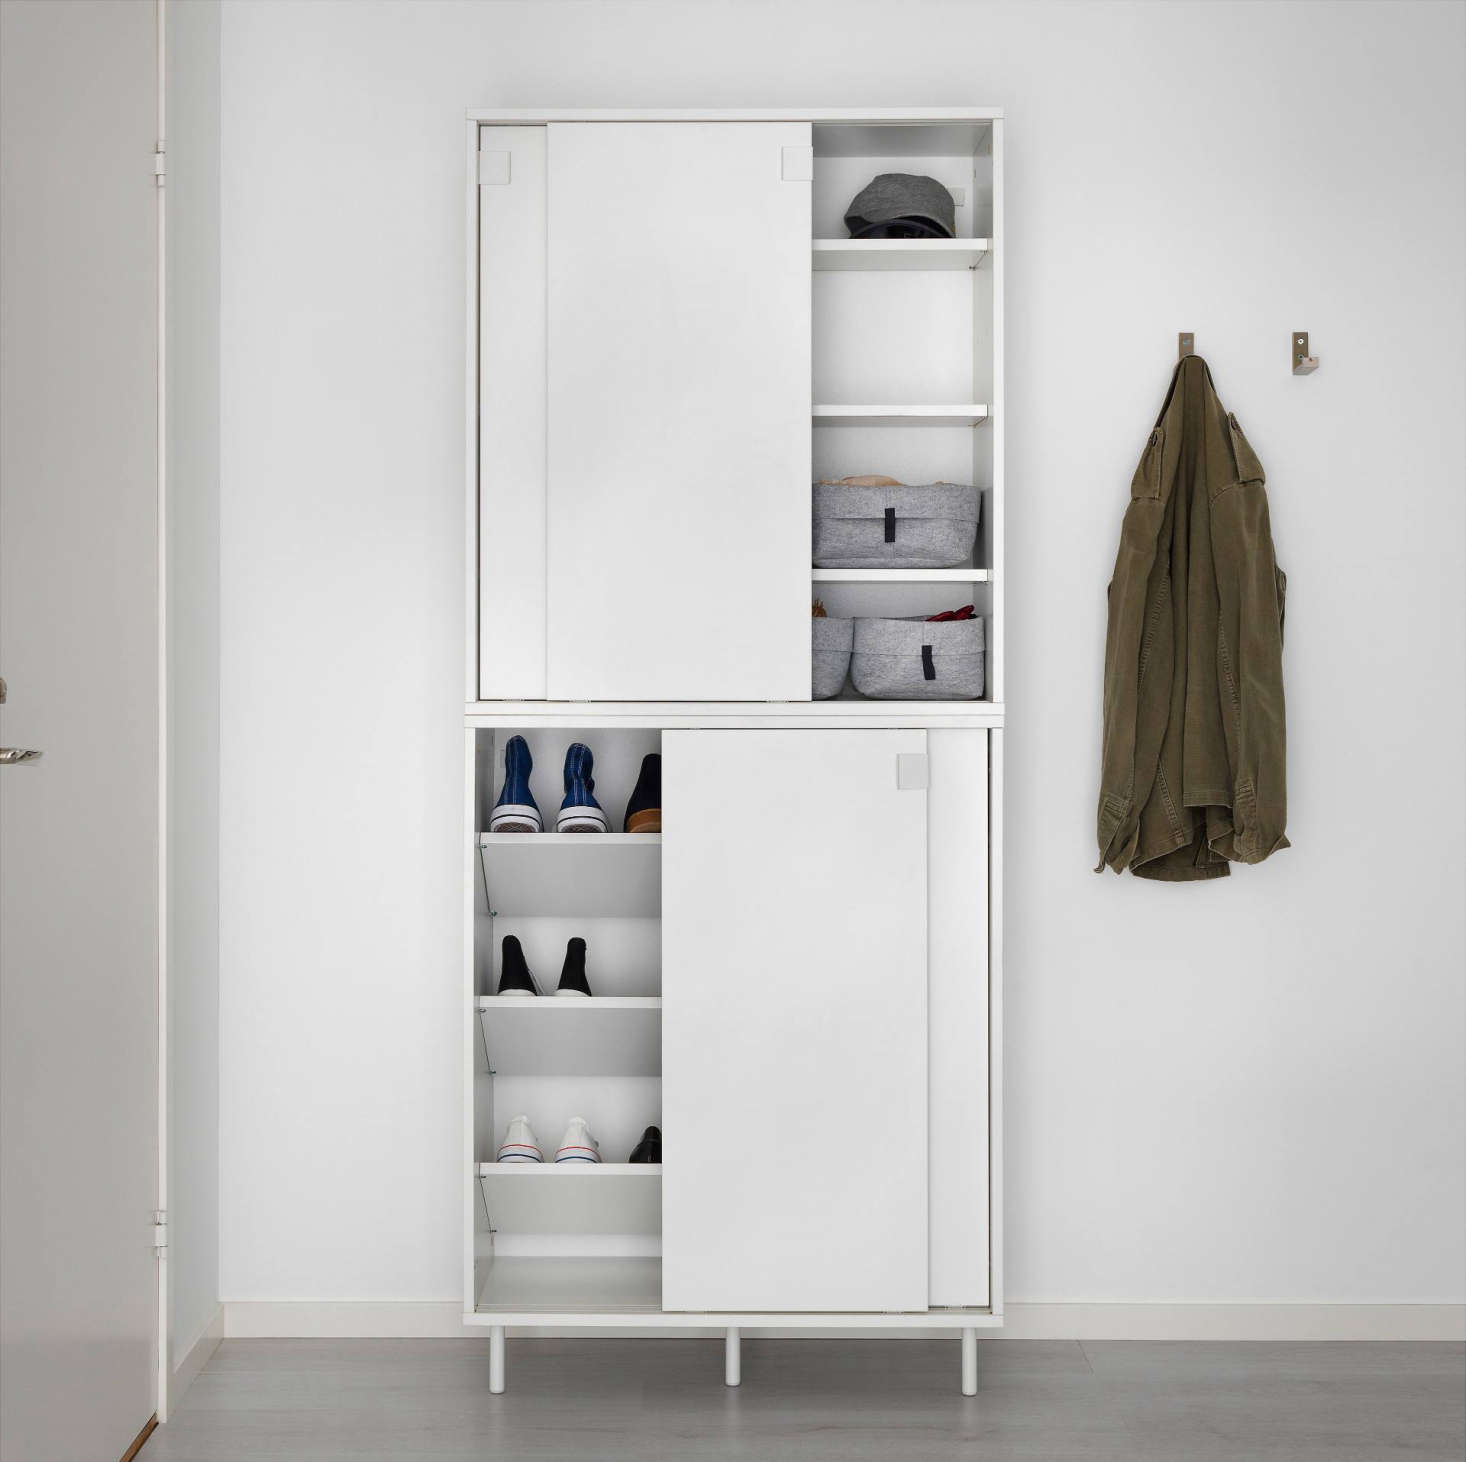 Ikea Storage Cabinets Ikea Storage Solutions For Minimalists On A Budget Remodelista